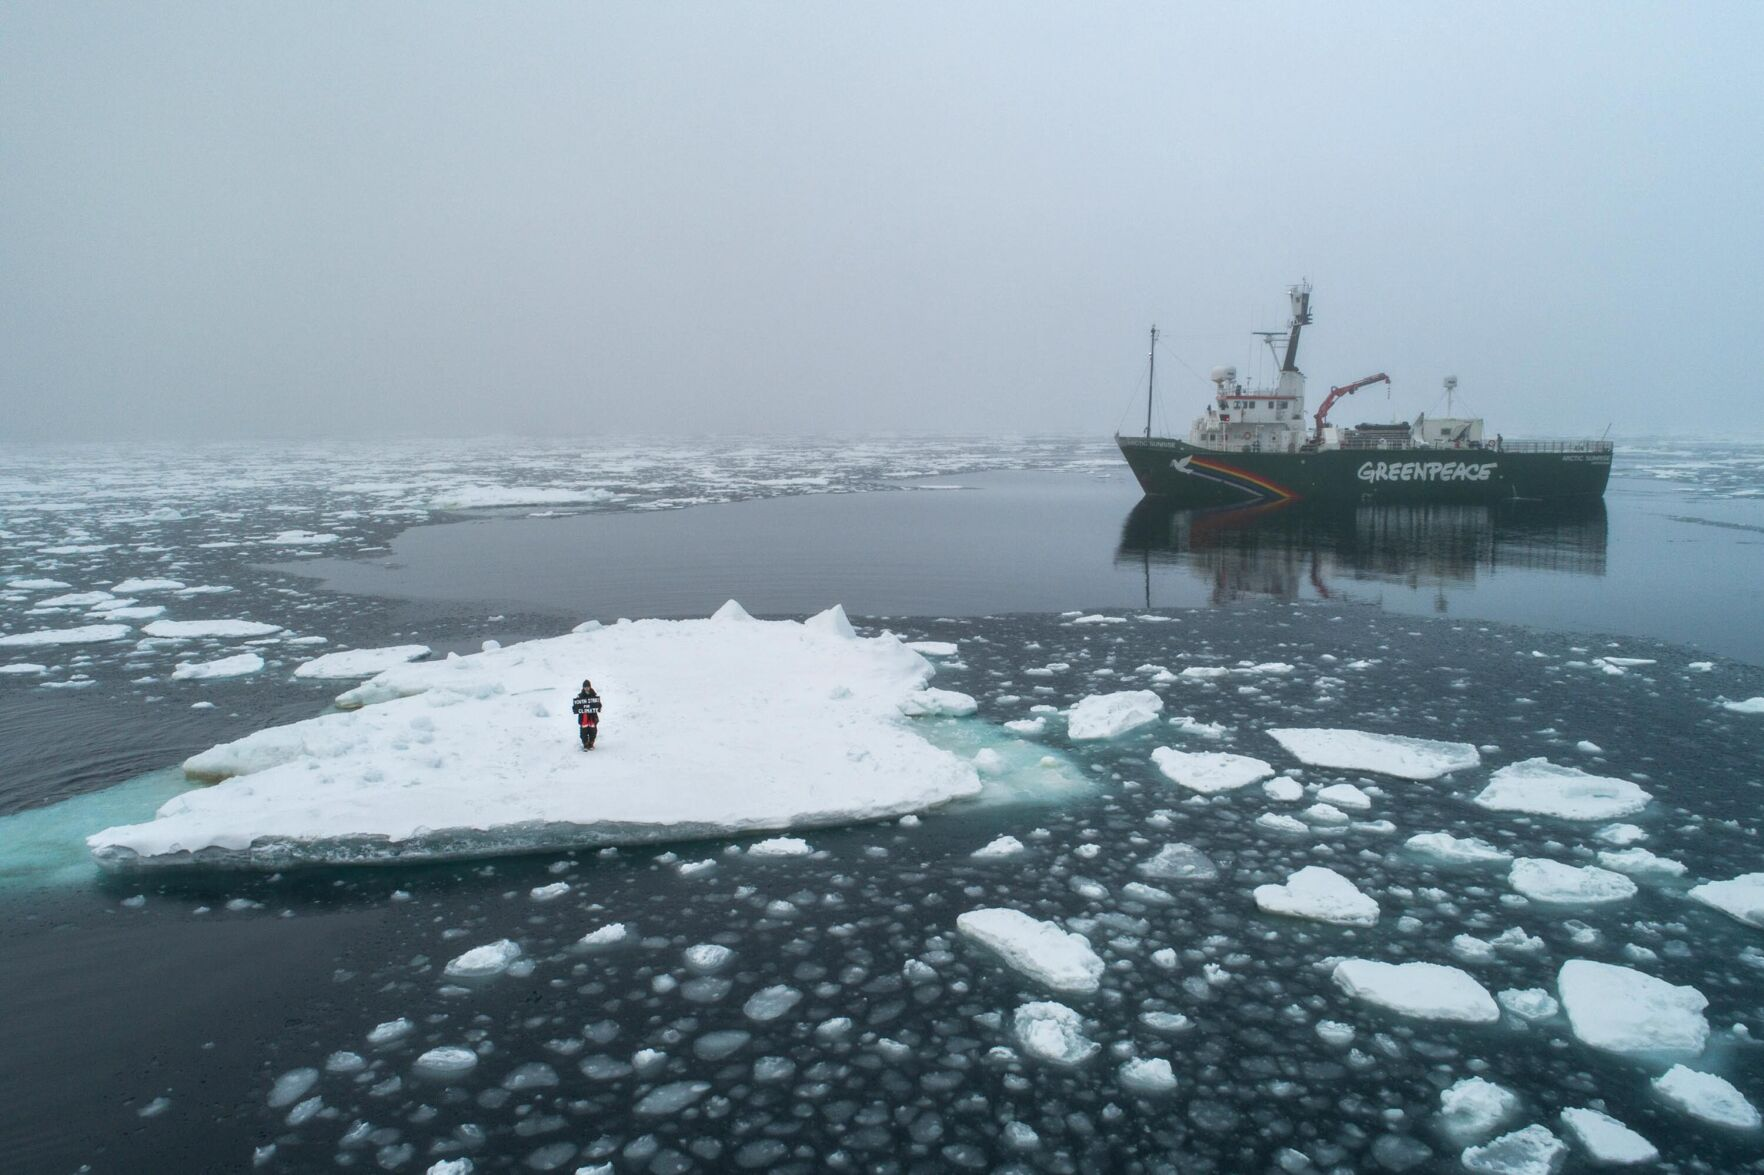 A British teenager staged a sit-in on an Arctic ice floe to protest climate change